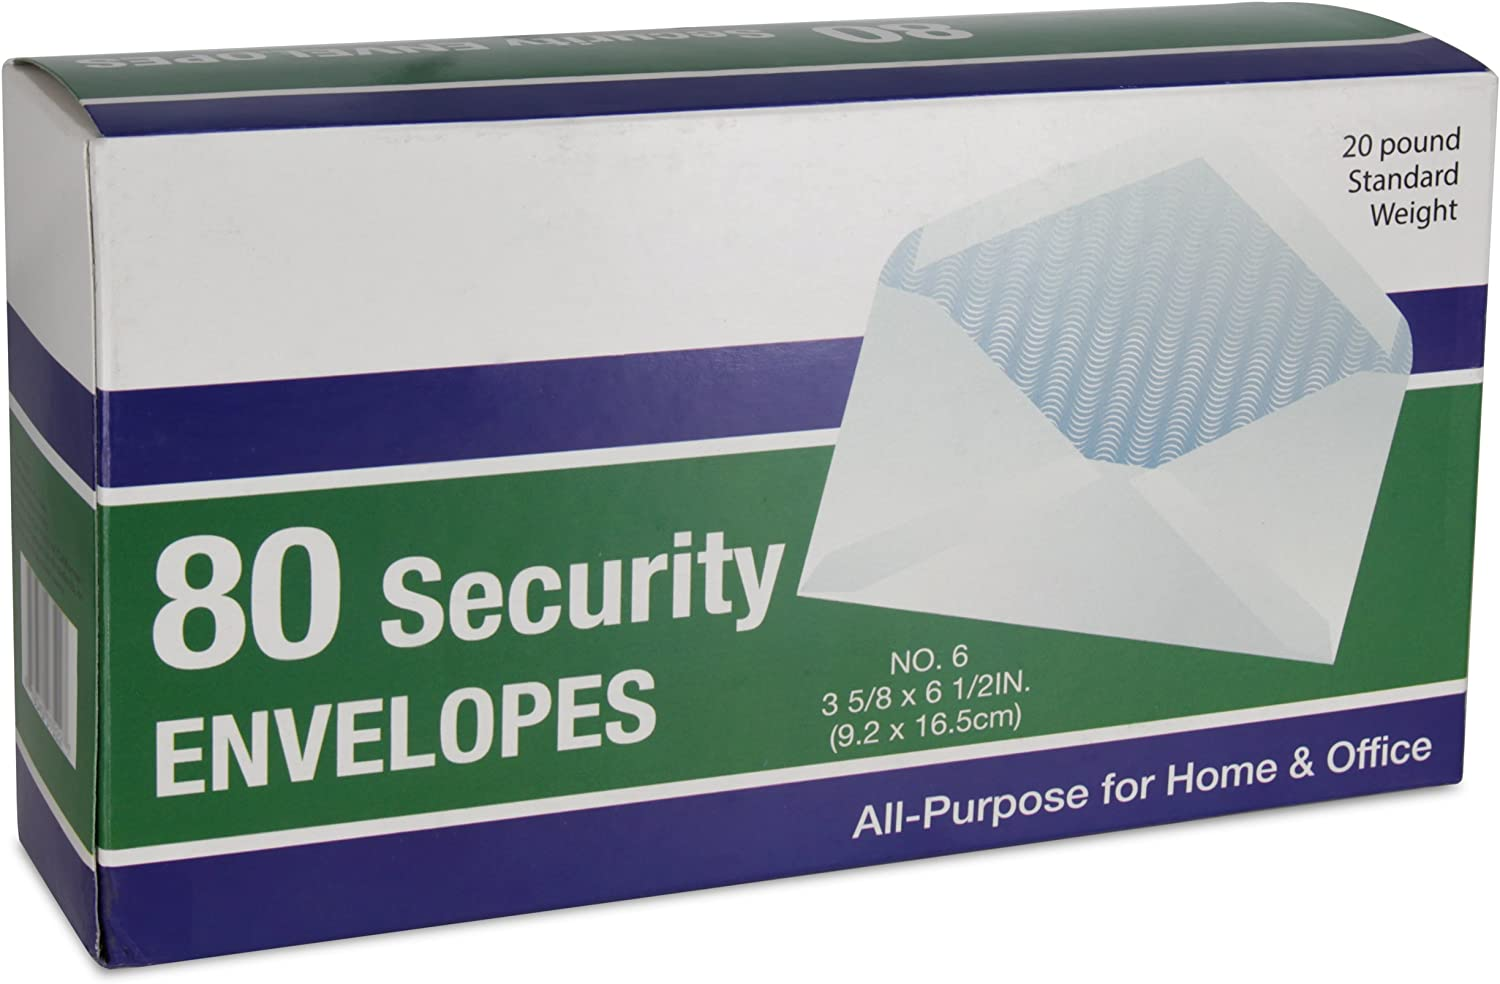 Emraw White All-Purpose Security Envelopes #6-3/4 Personal & Professional Size 3-5/8 x 6-1/2 Inch - 80/Box - for Office & Home Use